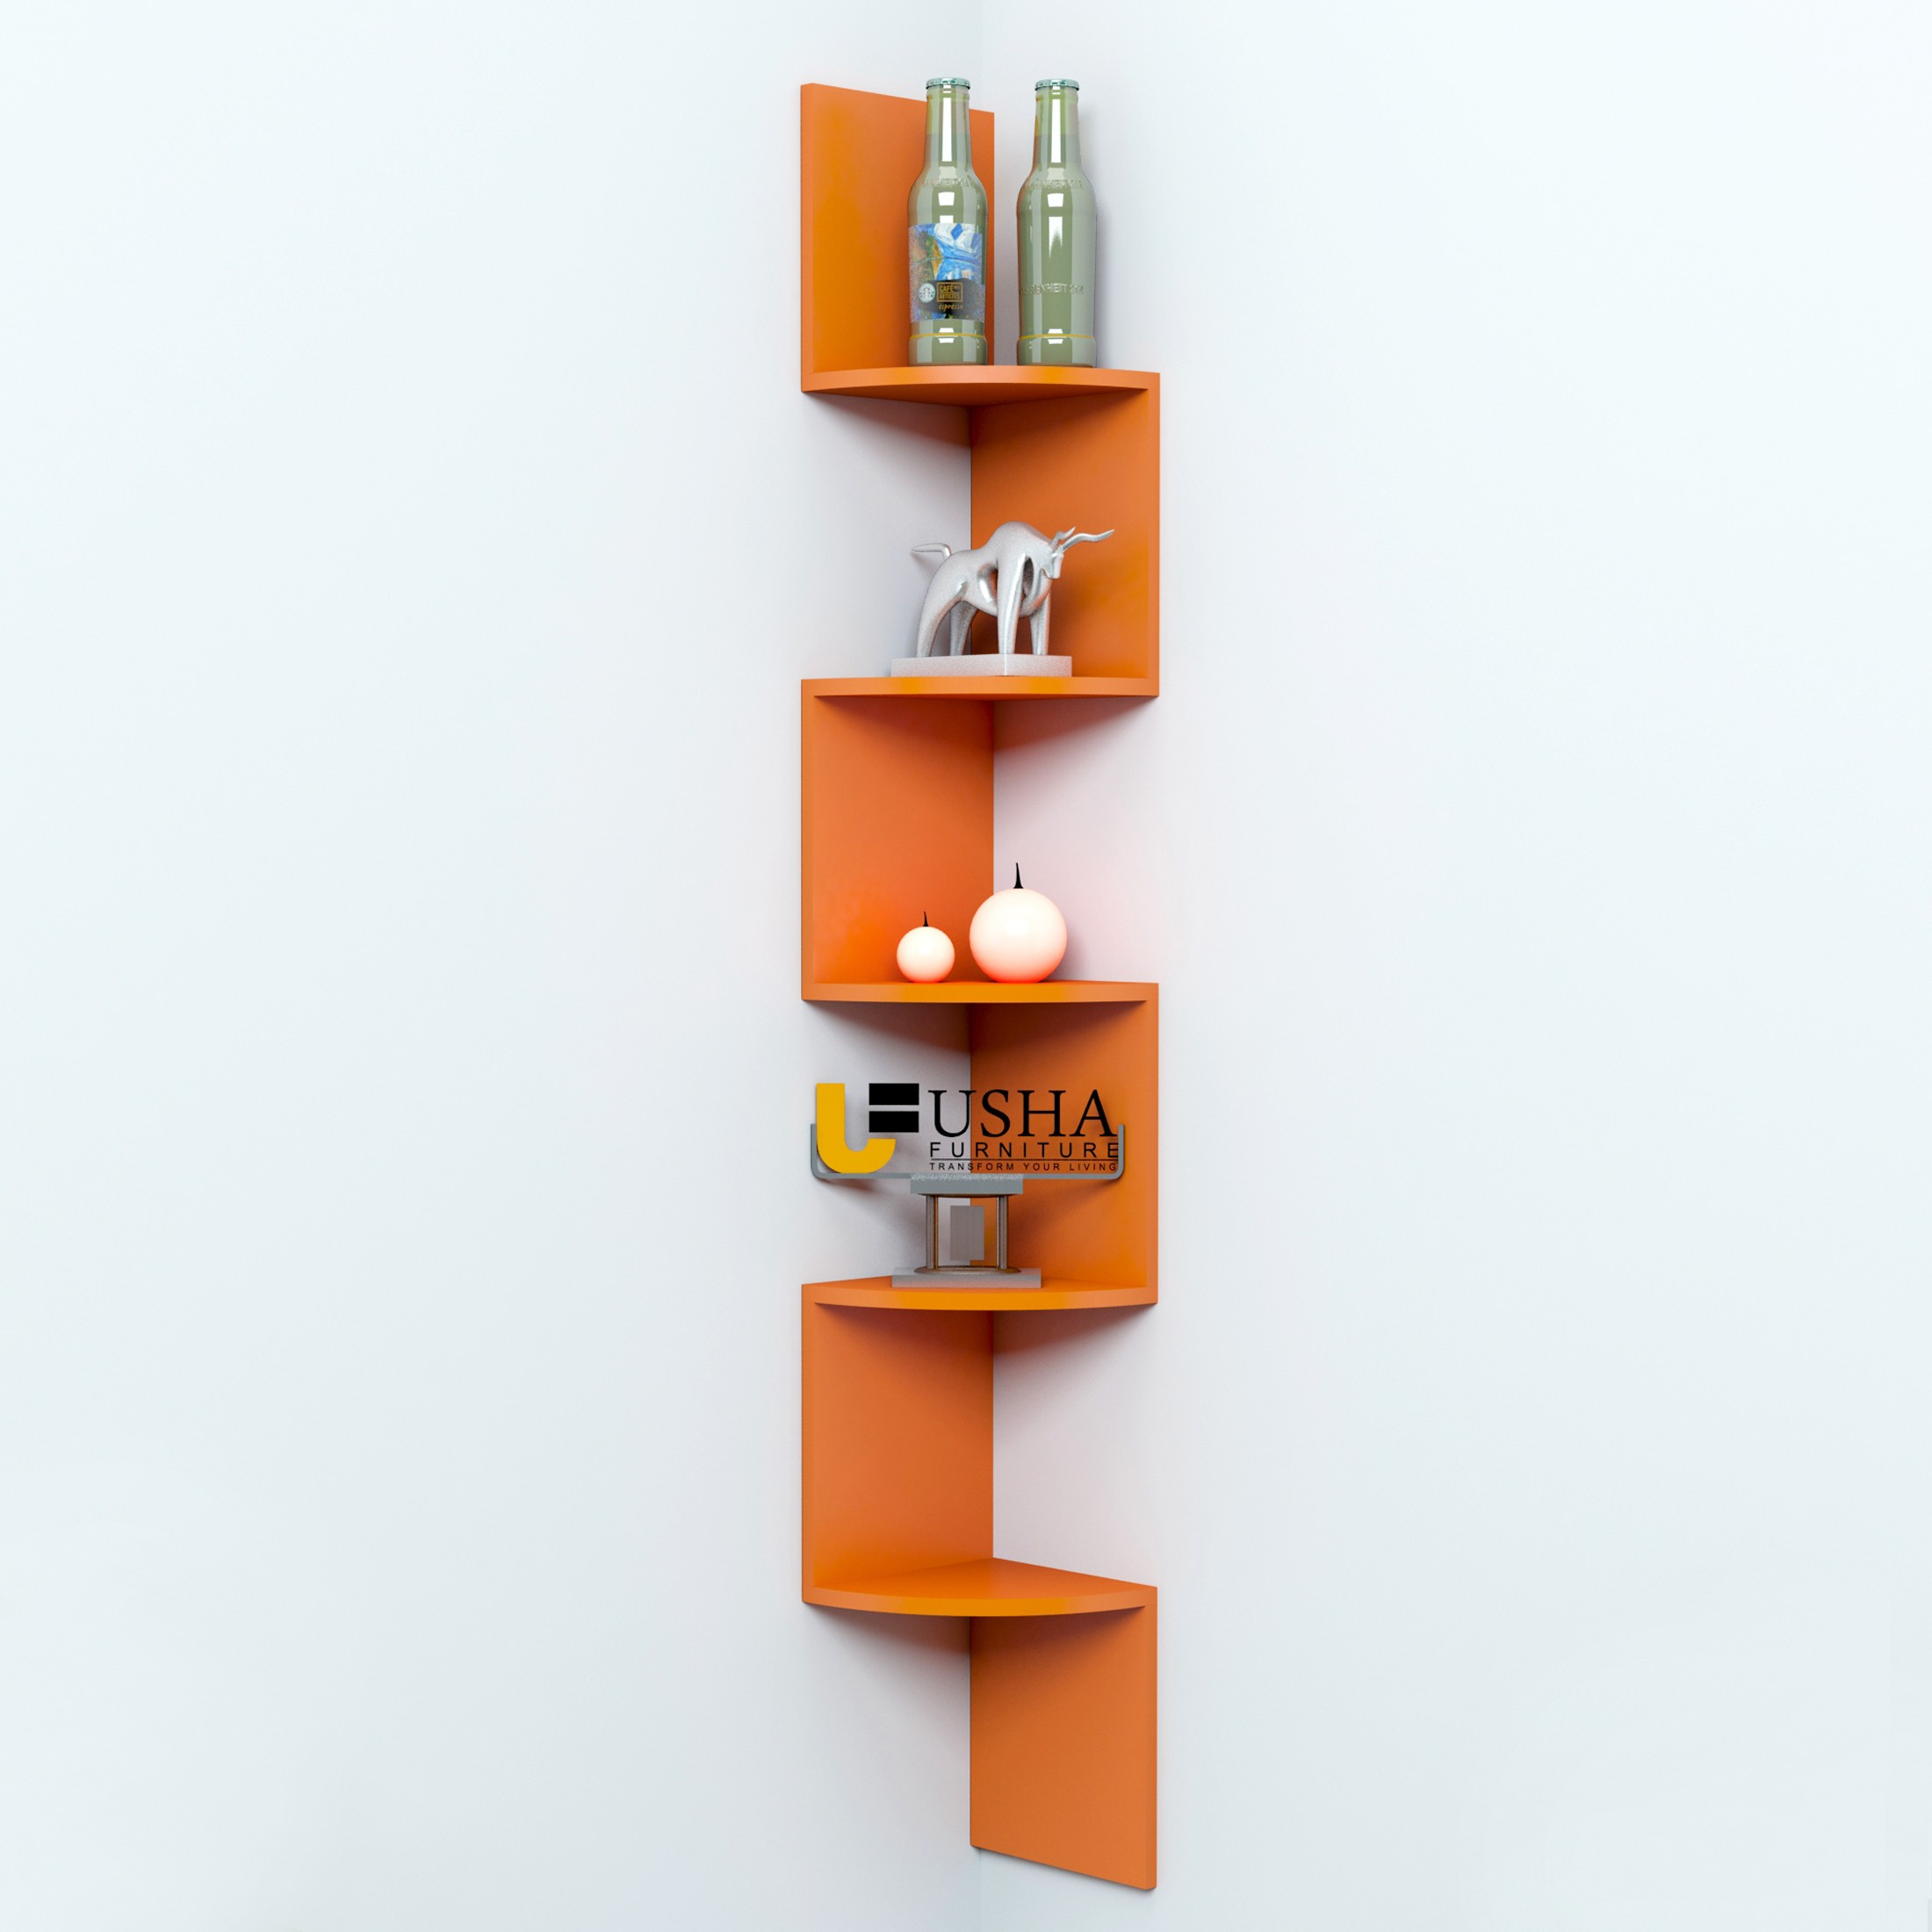 View Usha Furniture Corner Mount Wall Shelves Zigzag Shape Rack MDF Wall Shelf(Number of Shelves - 5, Orange) Furniture (Usha Furniture)